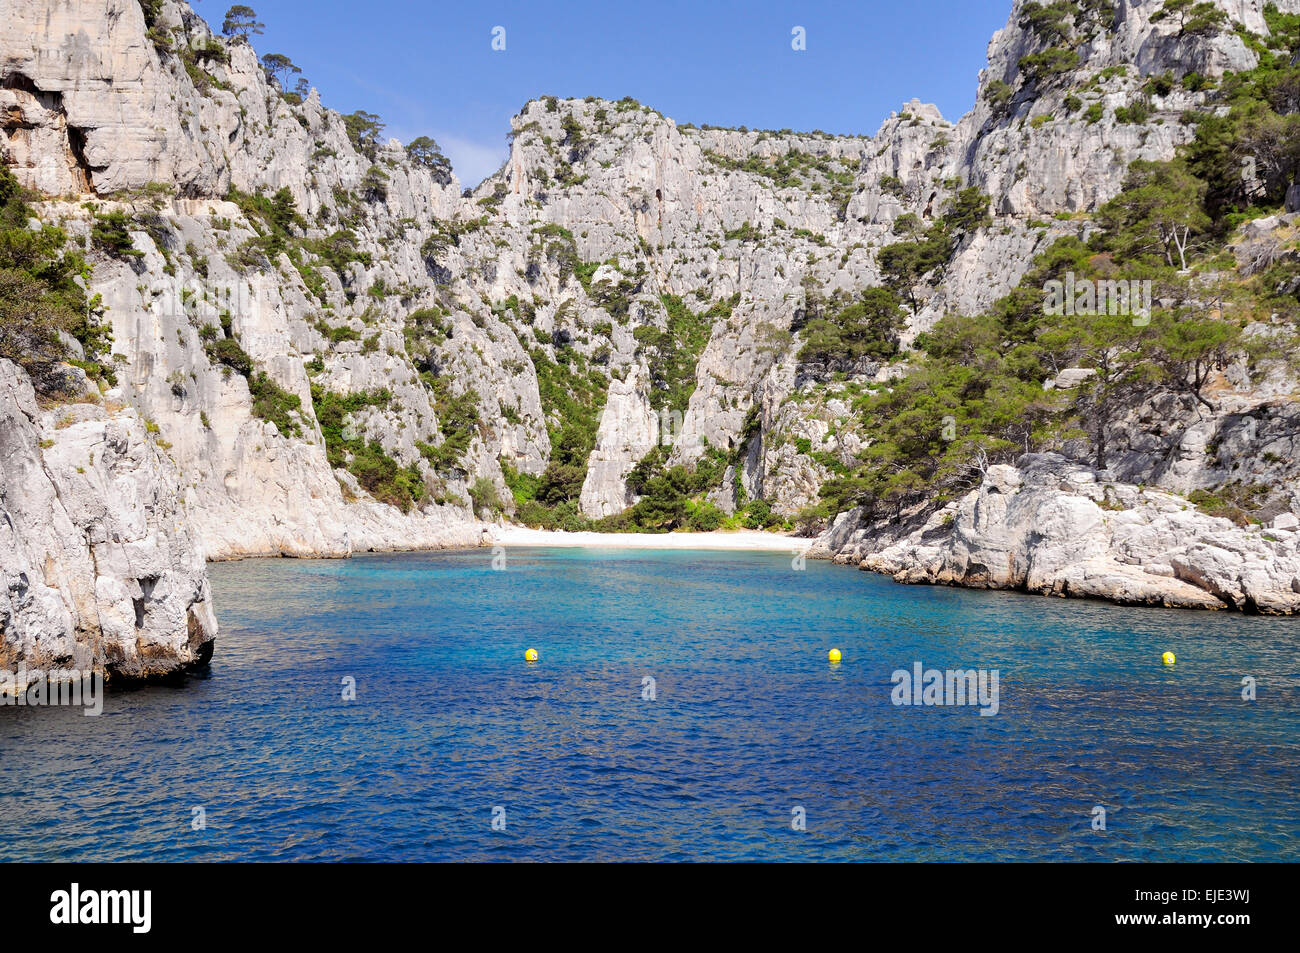 Calanques de Sugiton, France. Famous bay and beach nestled in the coastal mountains south of Marseilles. - Stock Image